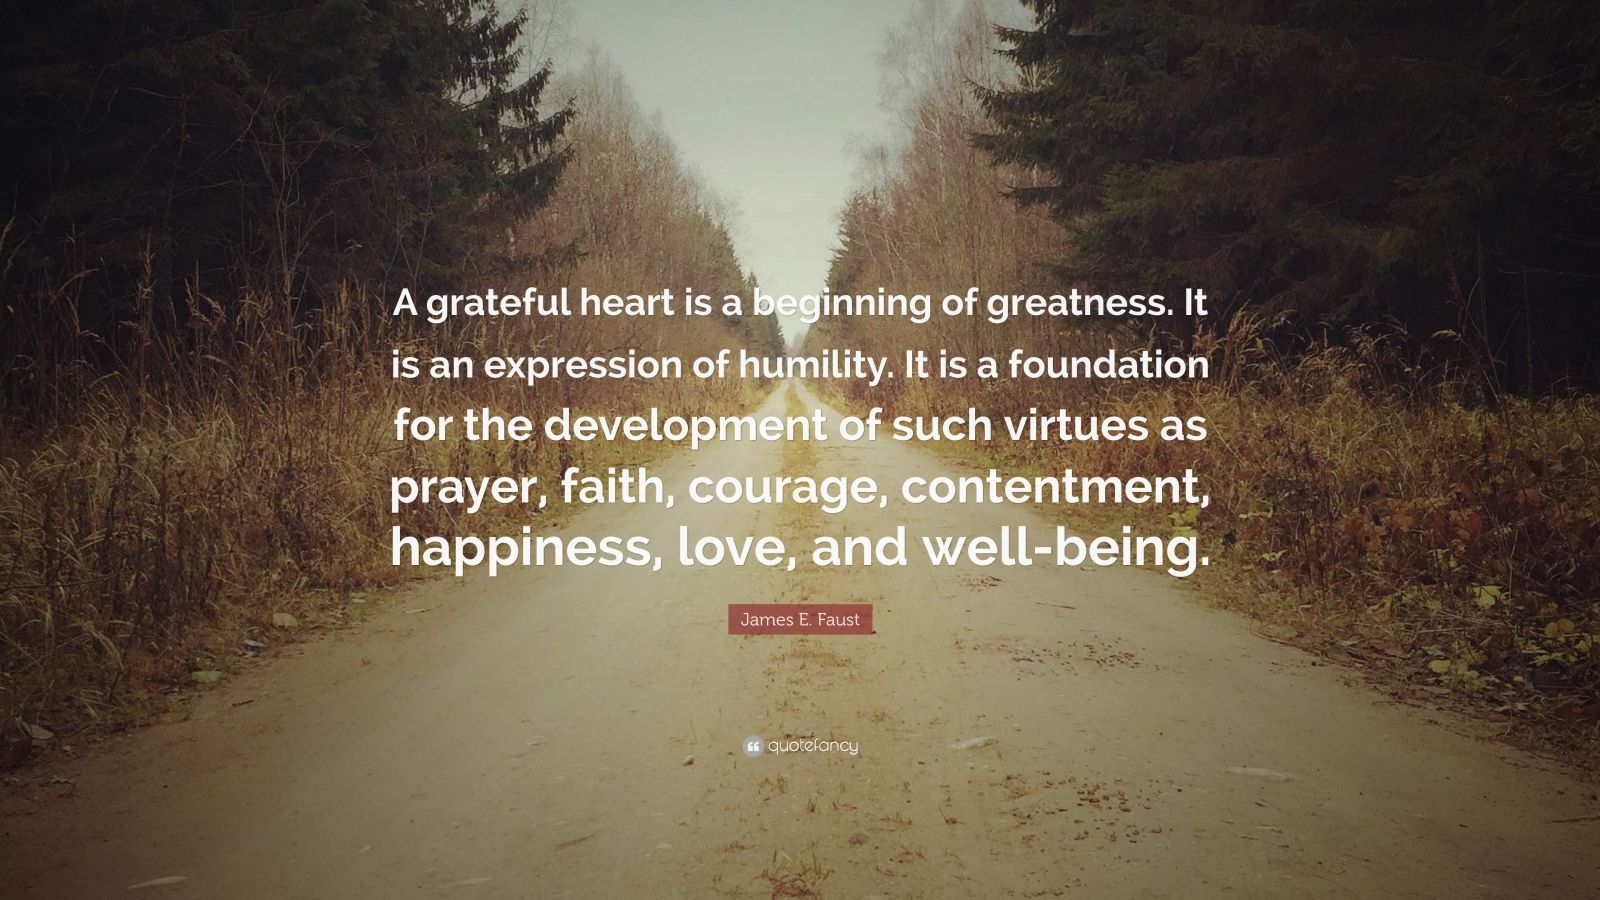 """James E. Faust Quote: """"A grateful heart is a beginning of greatness. It is an expression of humility. It is a foundation for the development of such virtues as prayer, faith, courage, contentment, happiness, love, and well-being."""""""